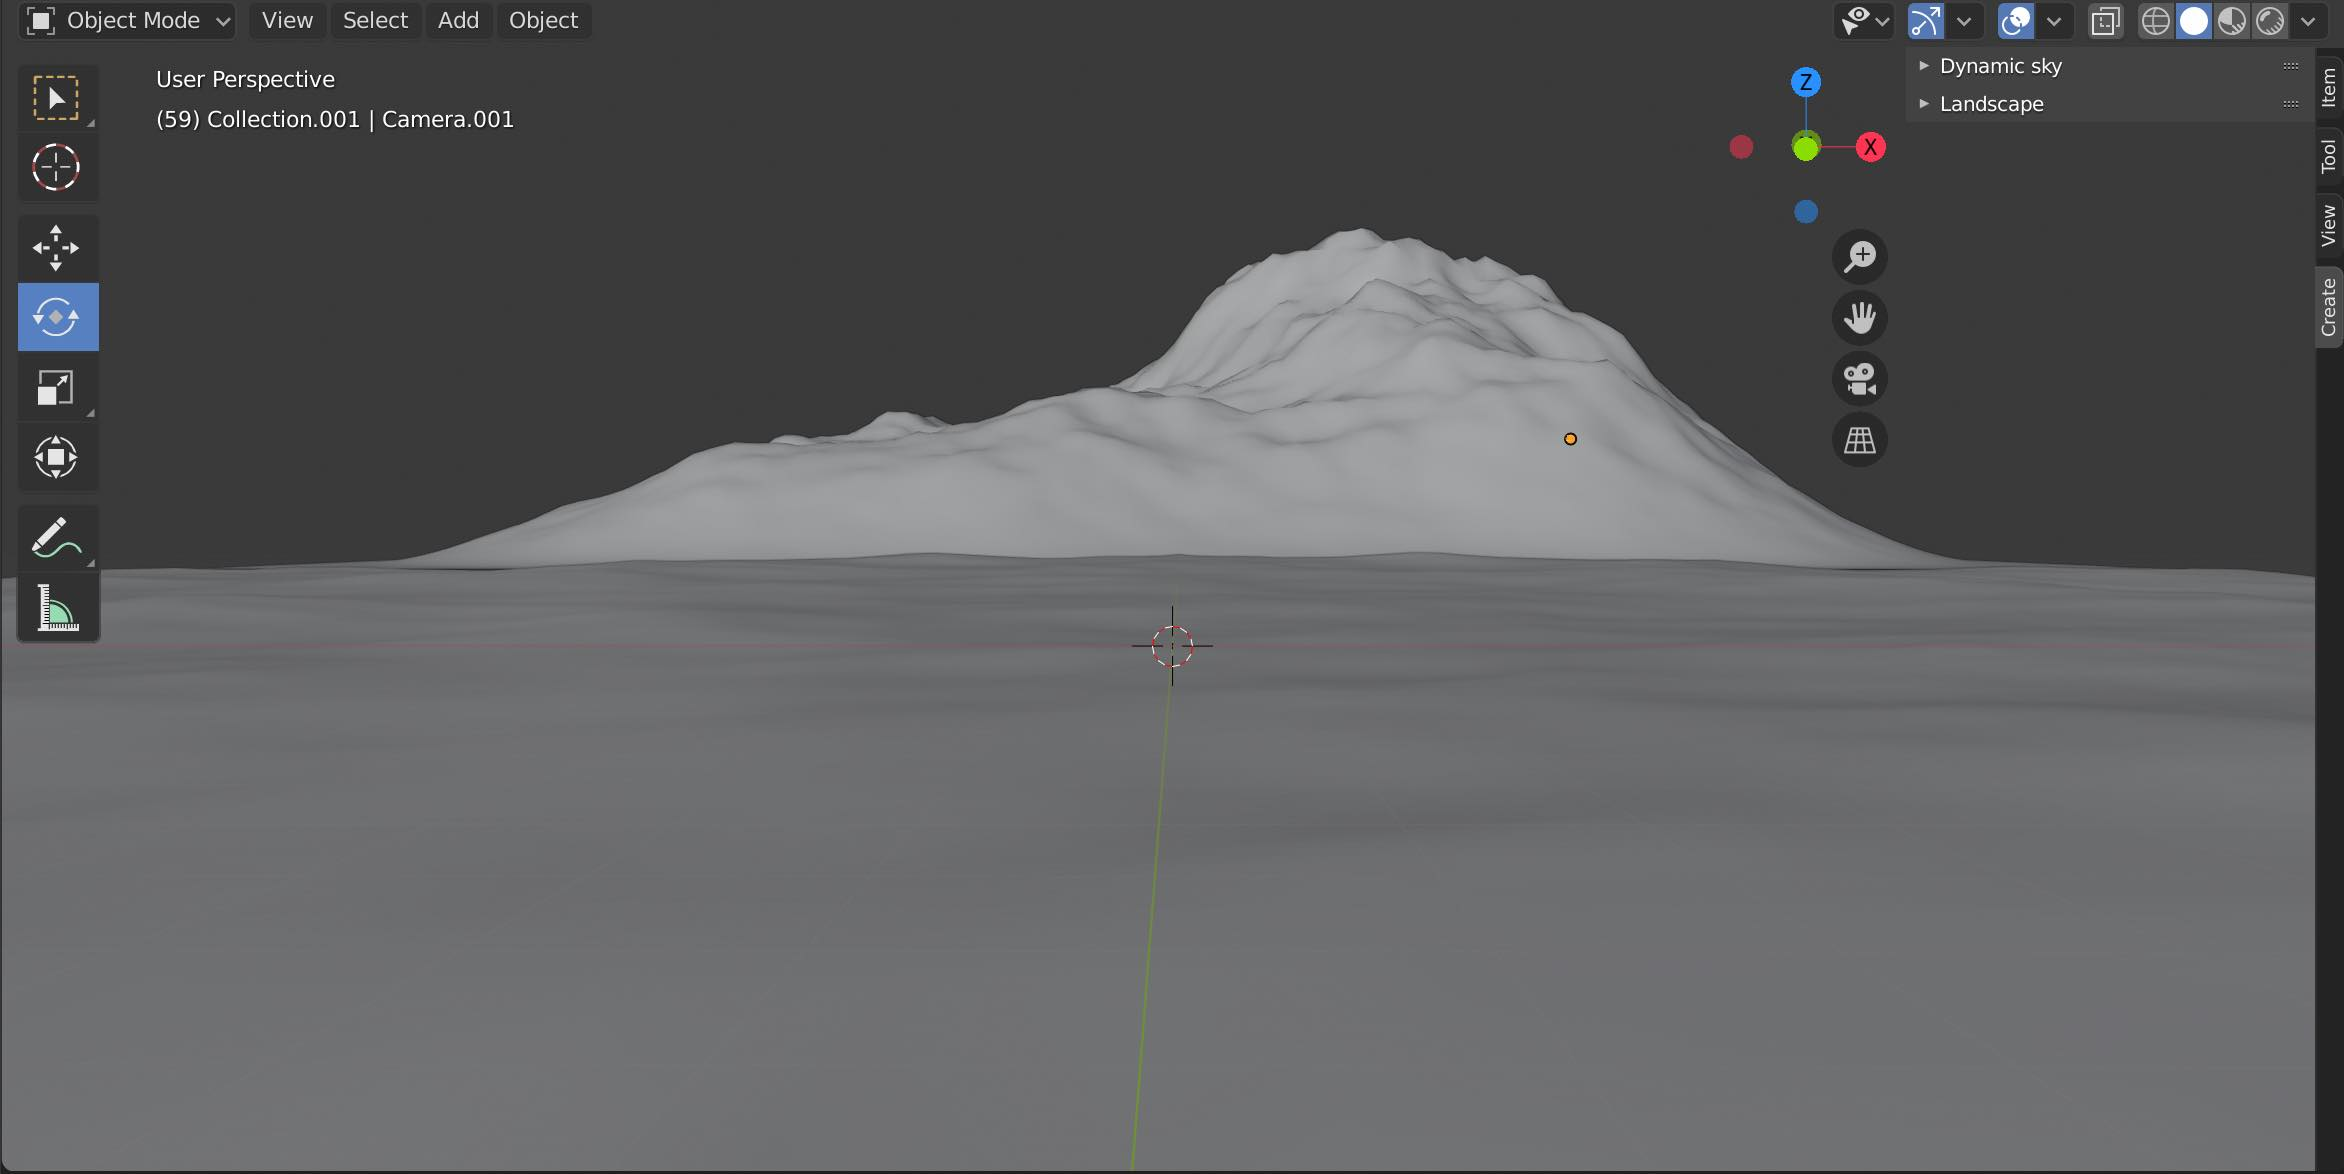 The Blender viewport with ocean and mountain in view.